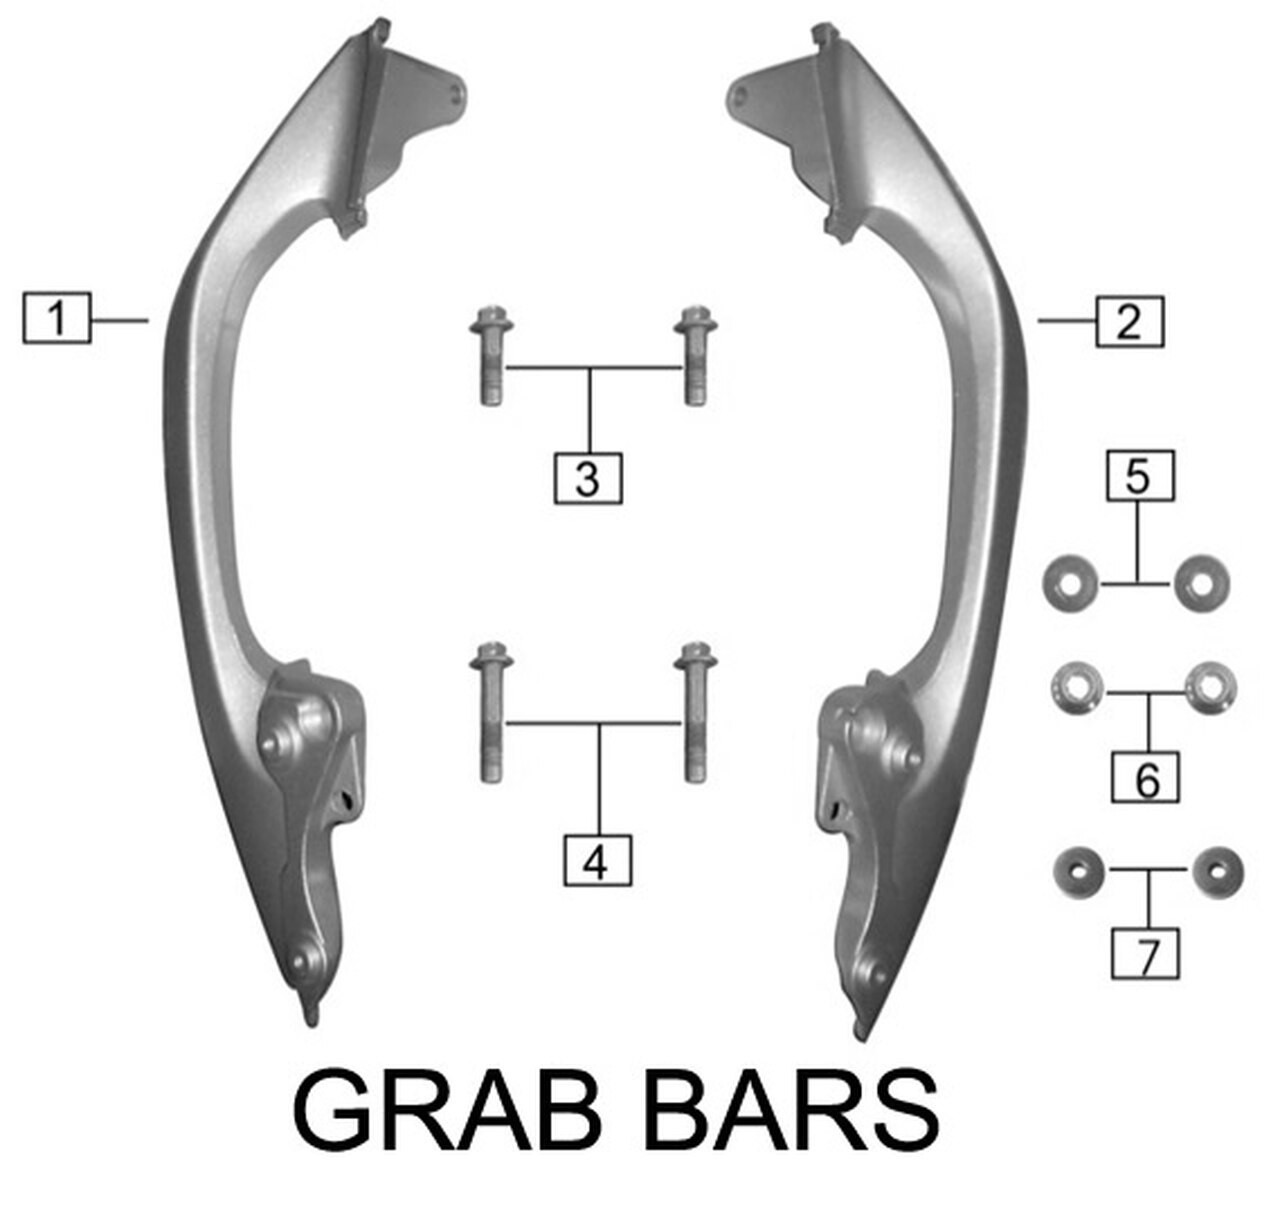 REAR GRAB BARS